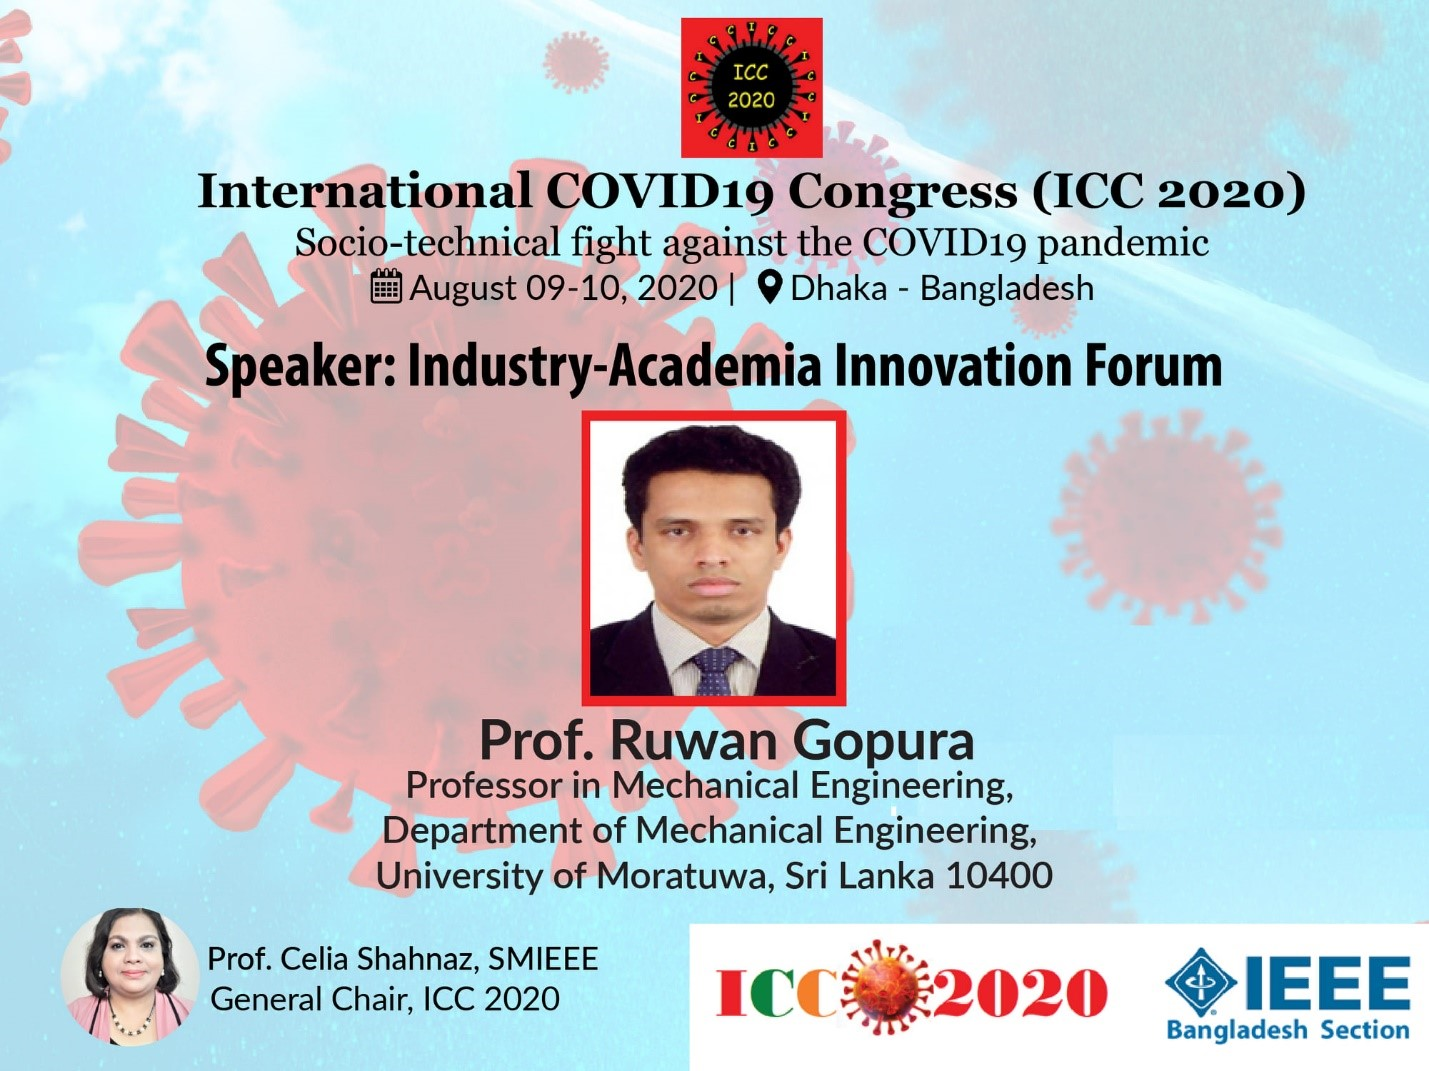 Speaker of the International COVID 19 Congress 2020